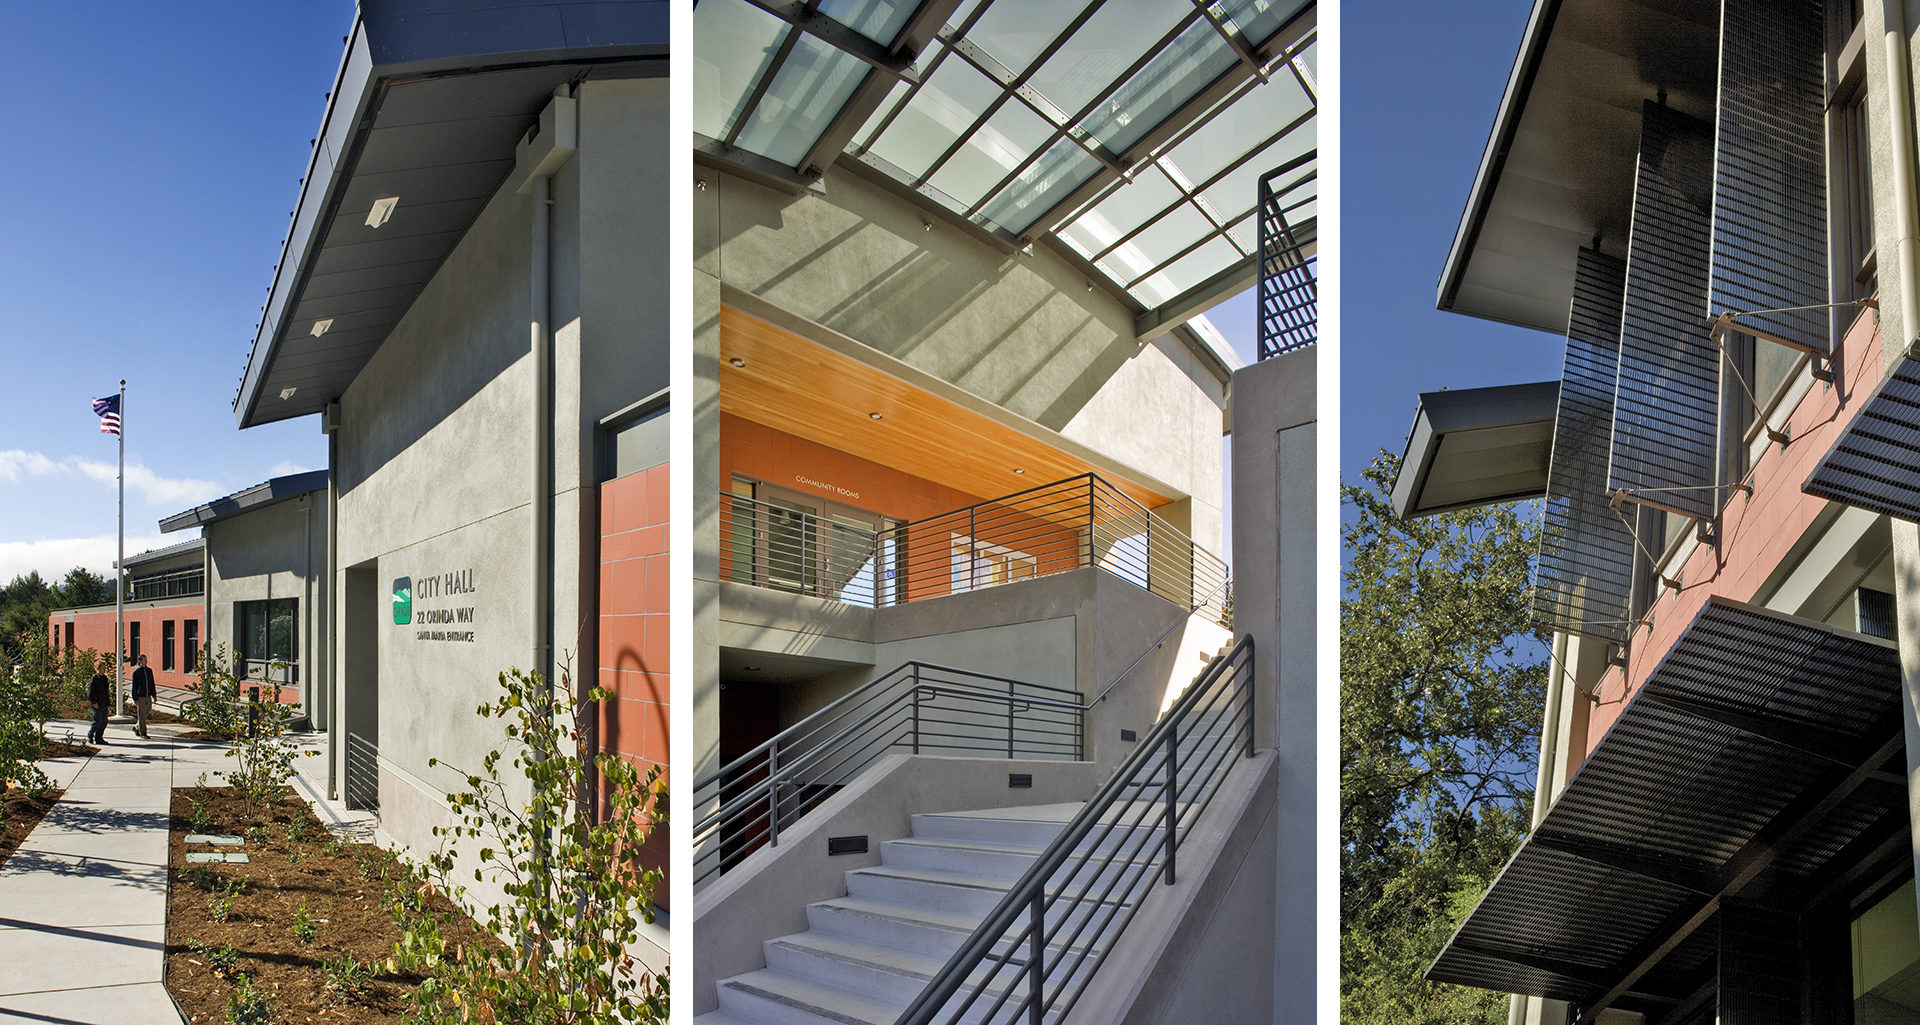 Orinda City Hall | Photos by David Wakely